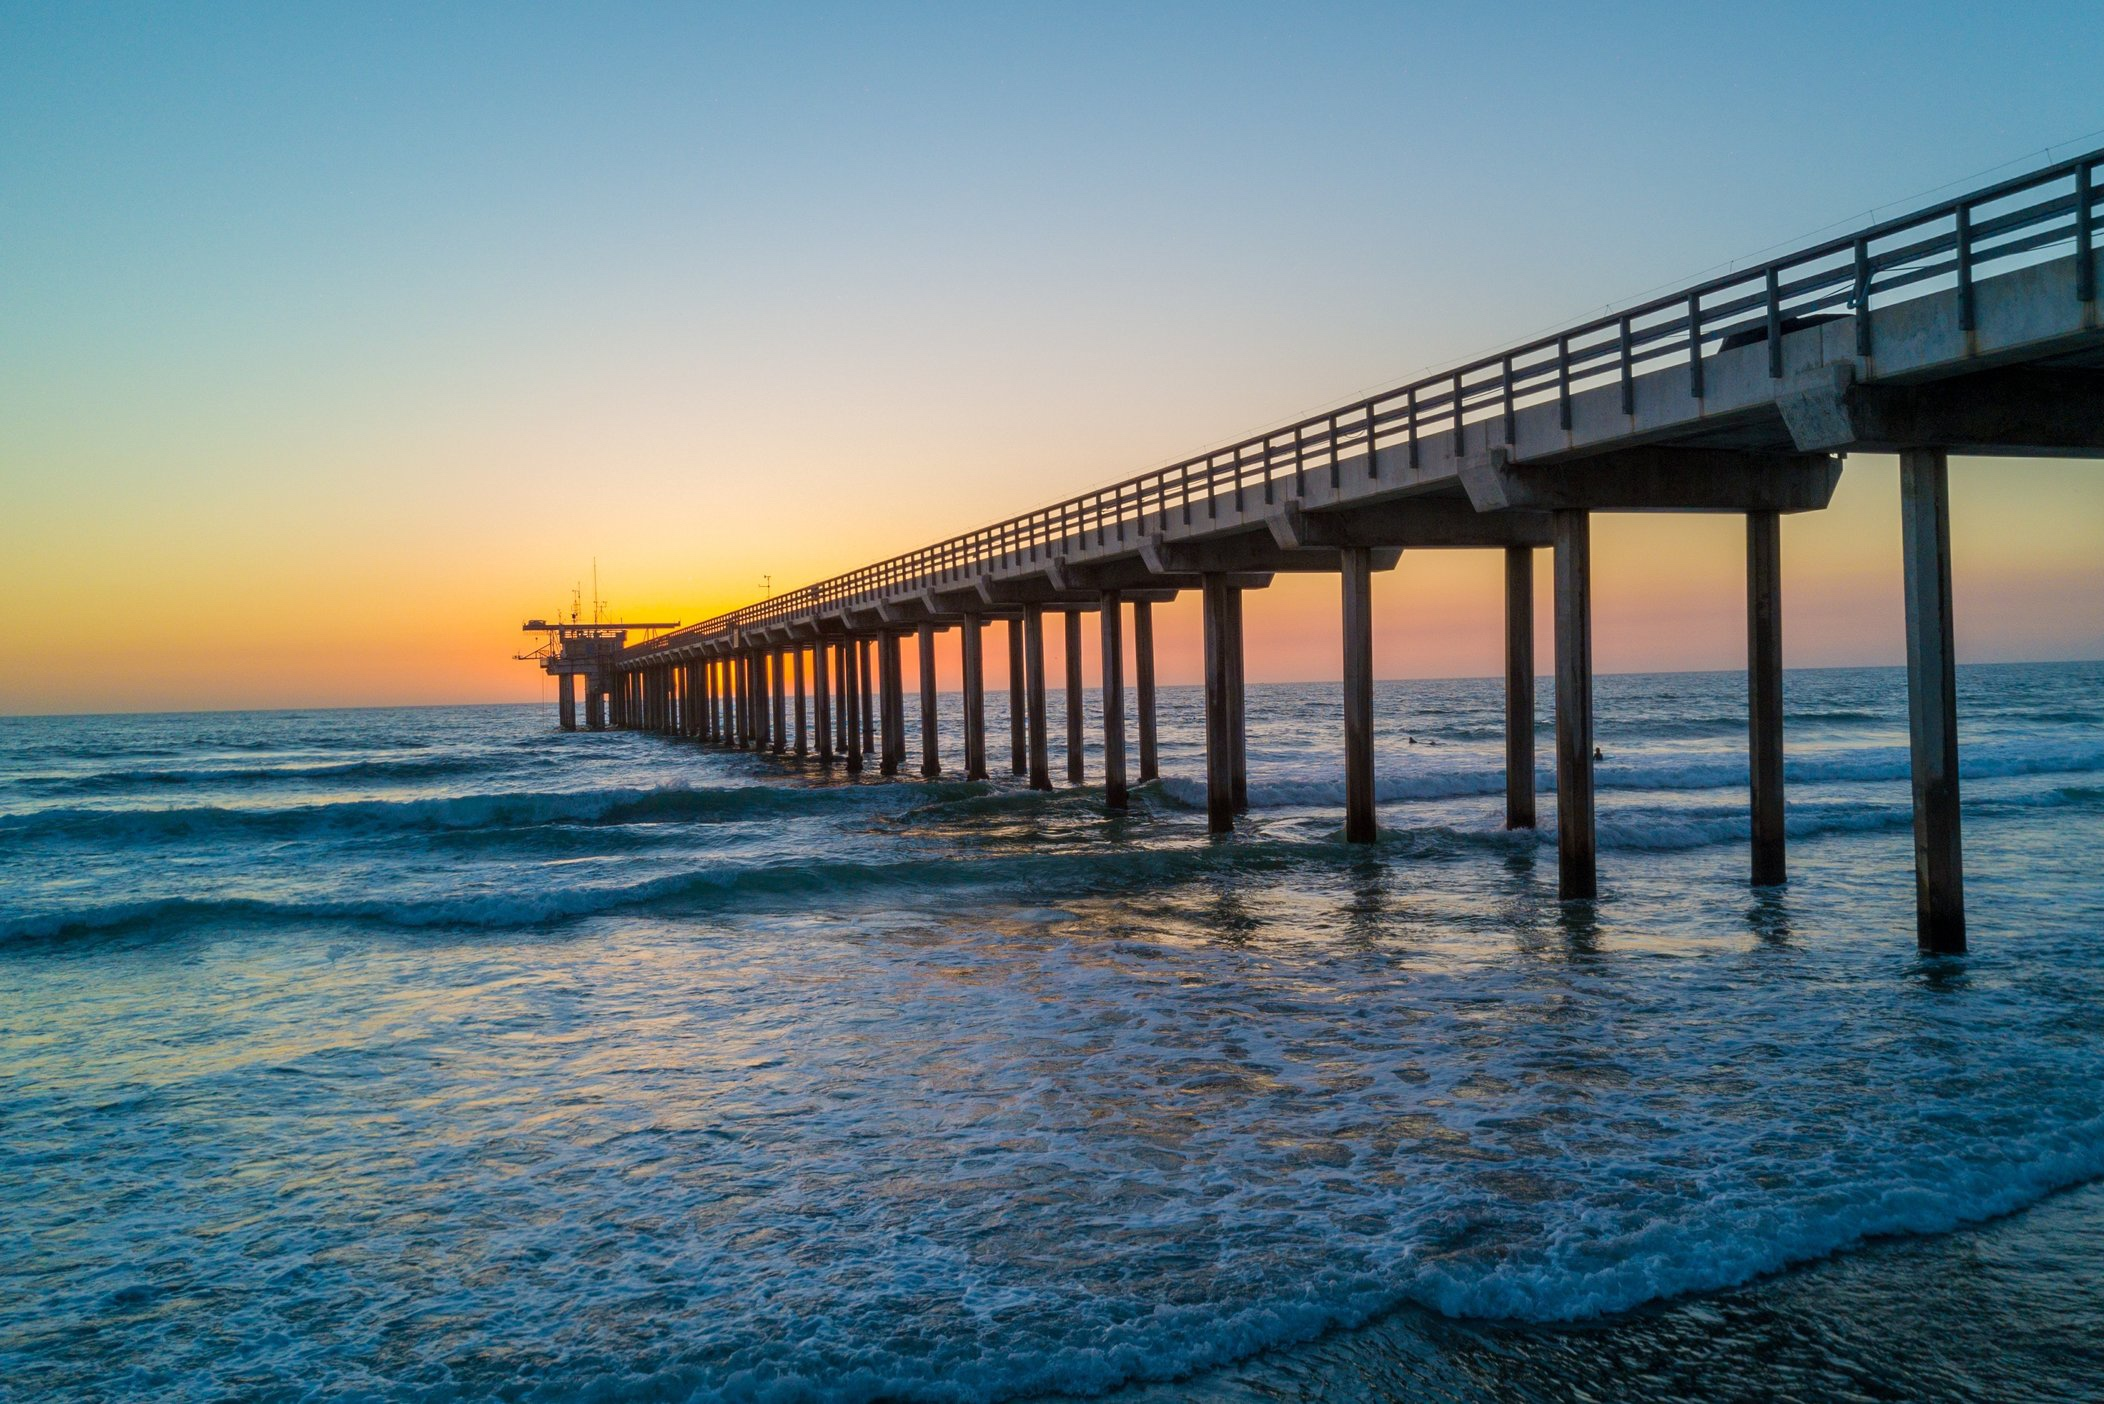 La Jolla & San Diego Beaches Tour - You know you want these sunsets!